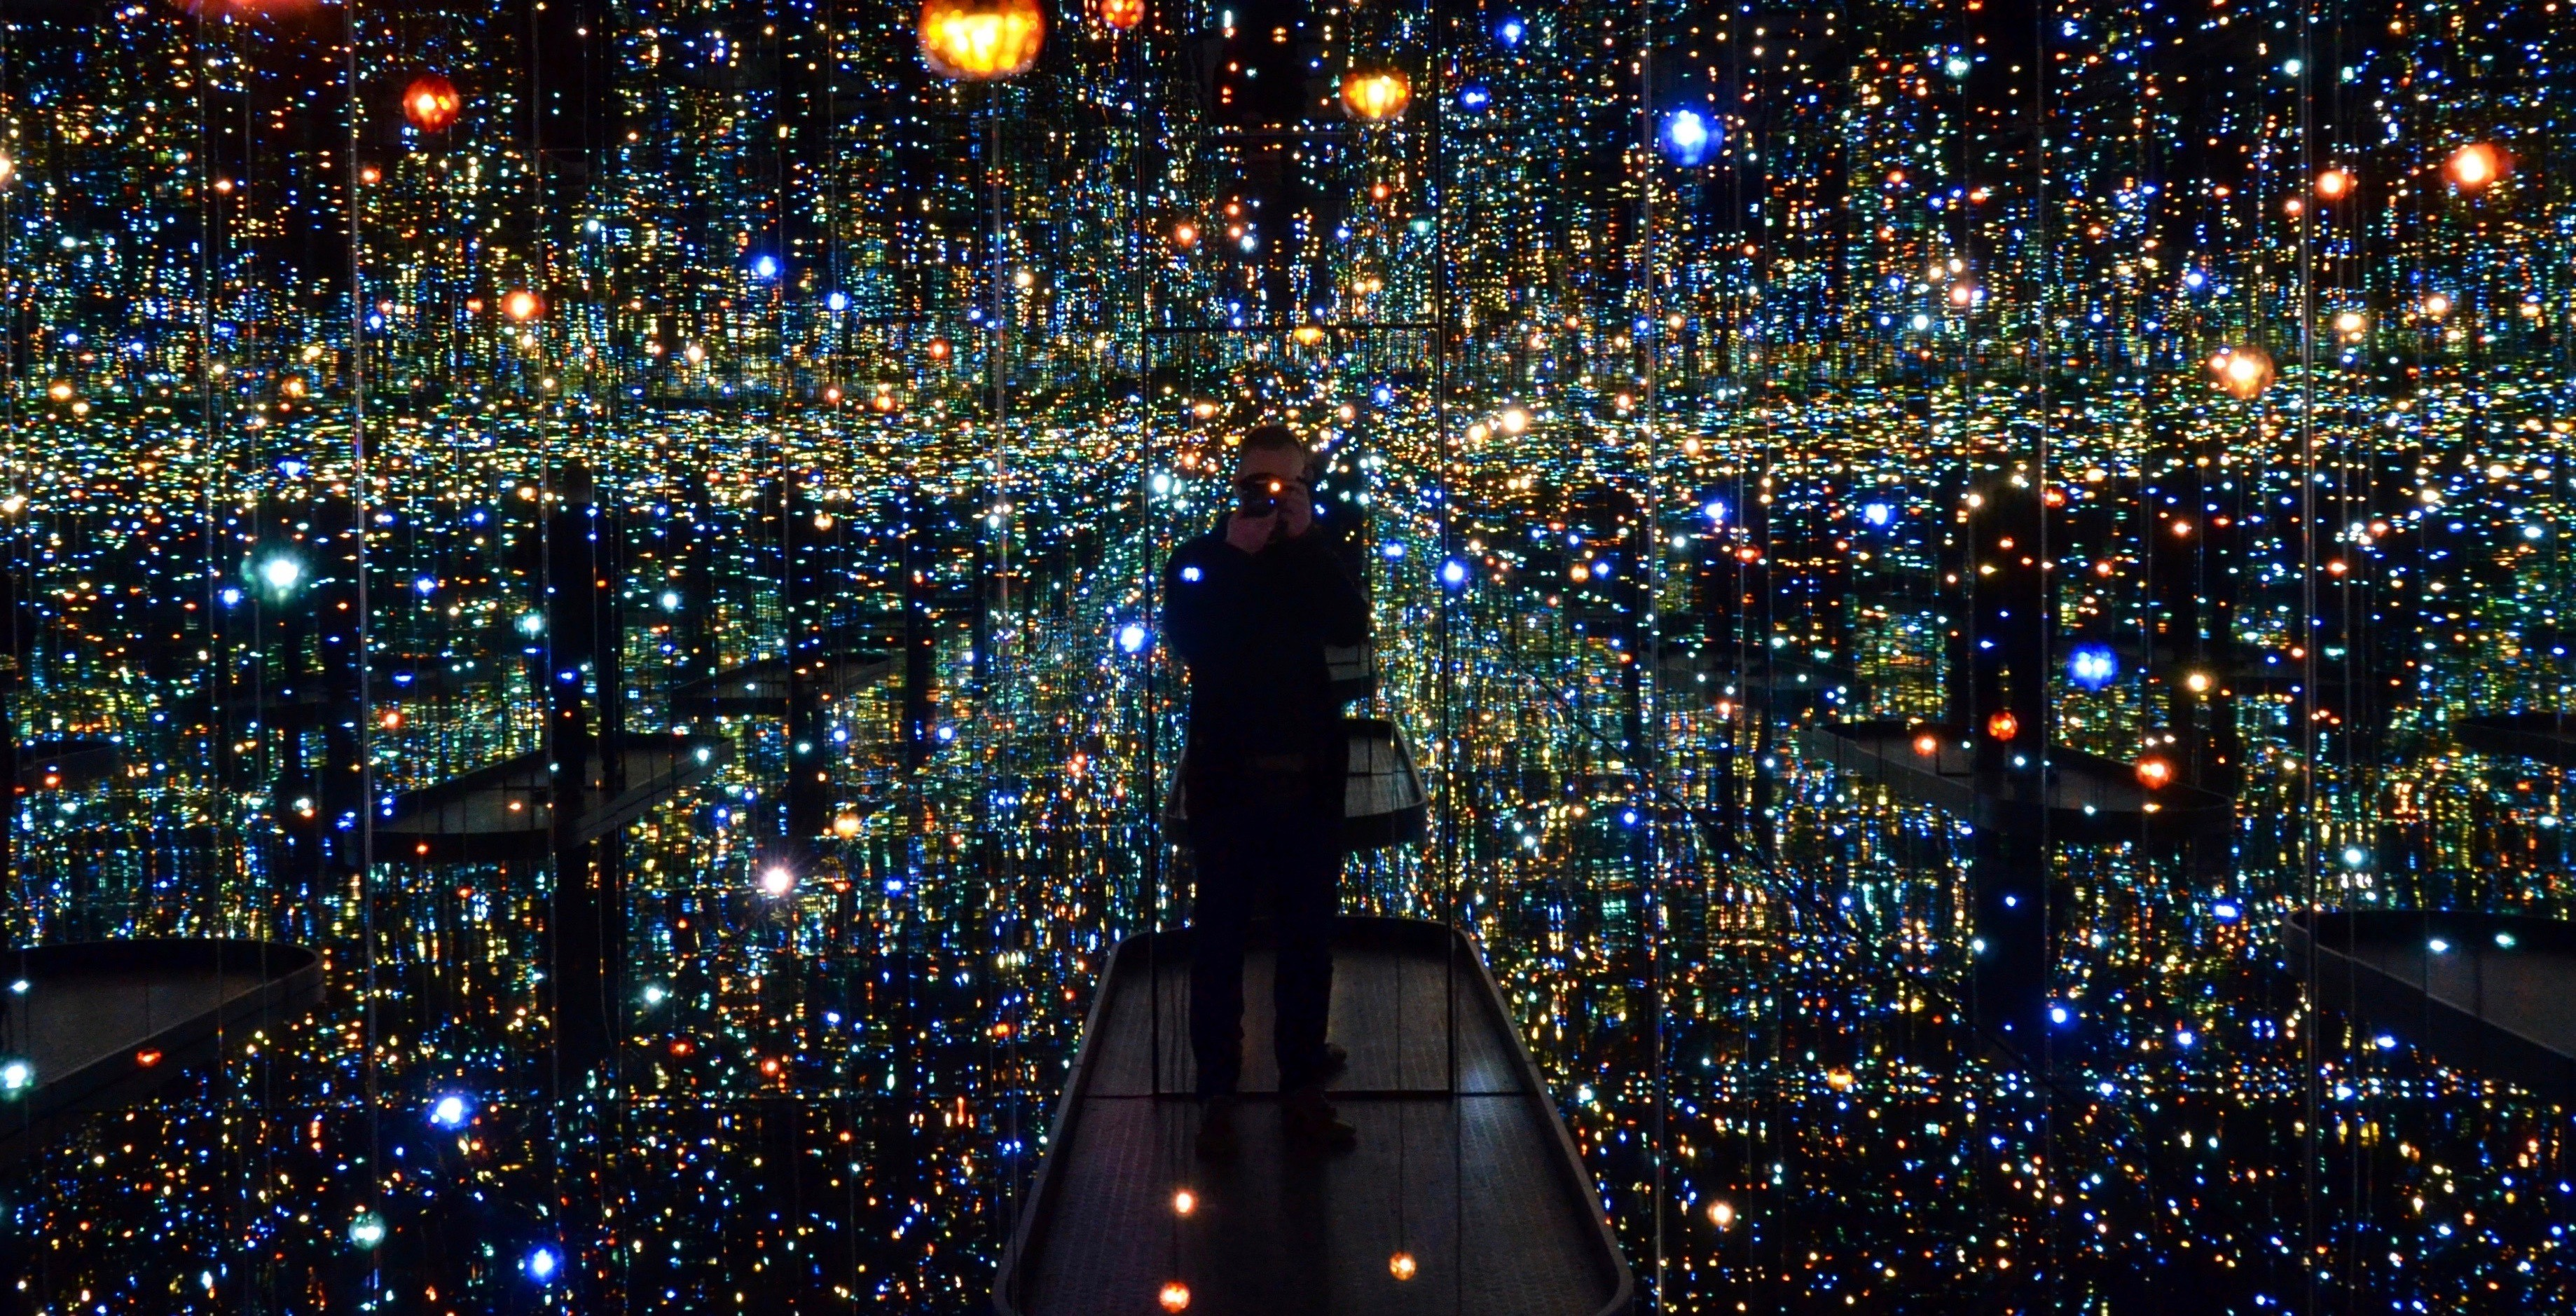 AGO launches crowdfunding campaign to bring Infinity Mirror room to Toronto forever